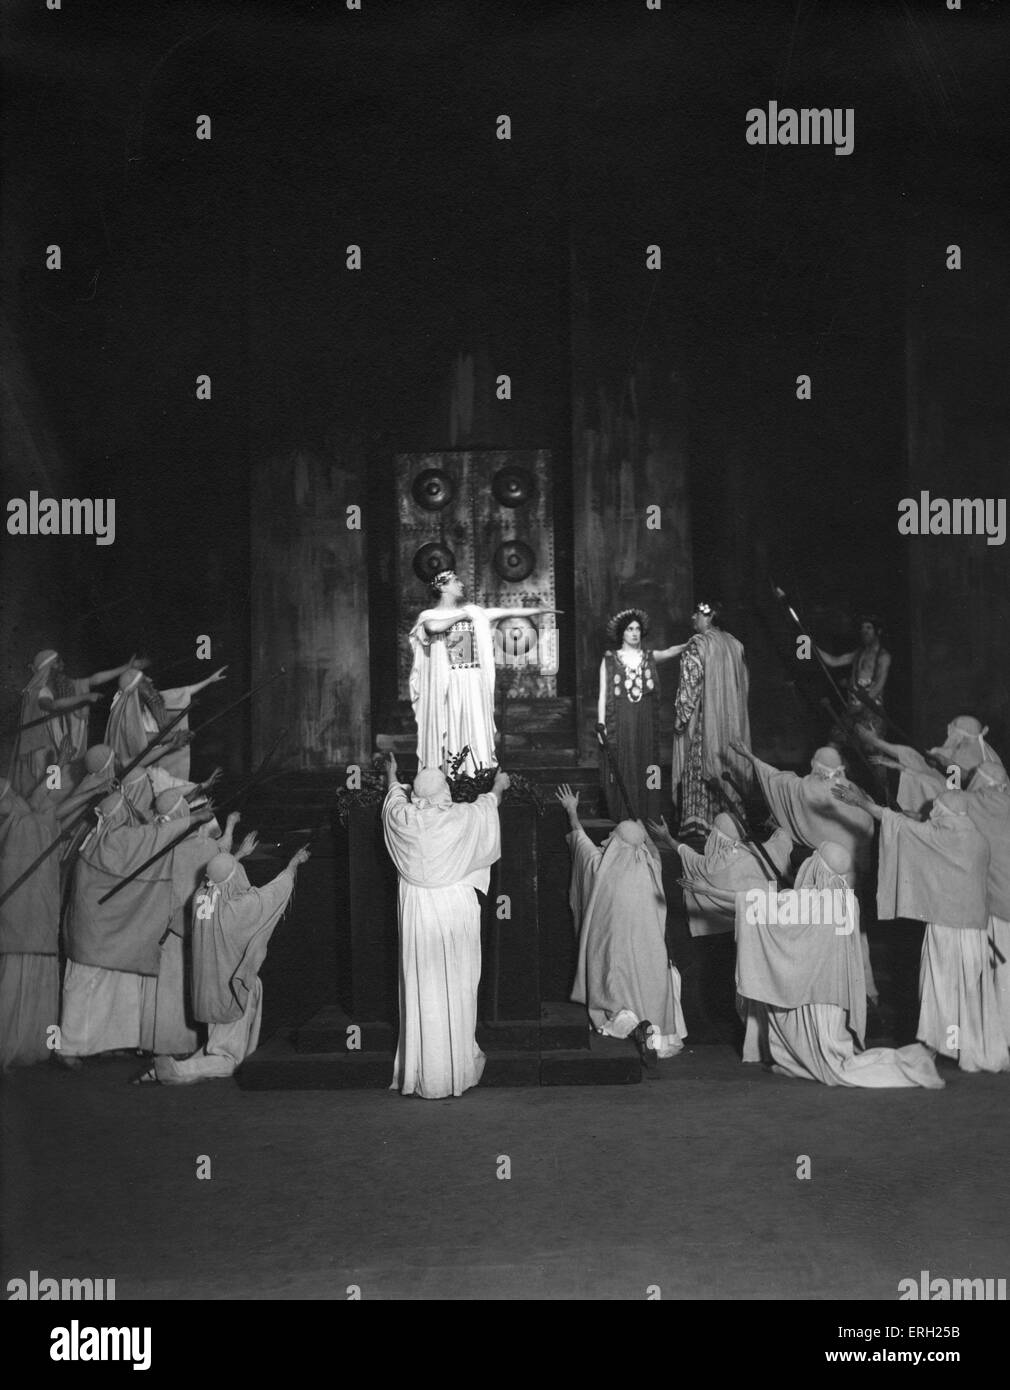 sophocles stock photos sophocles stock images alamy oedipus rex by sophocles performed in covent garden opera house